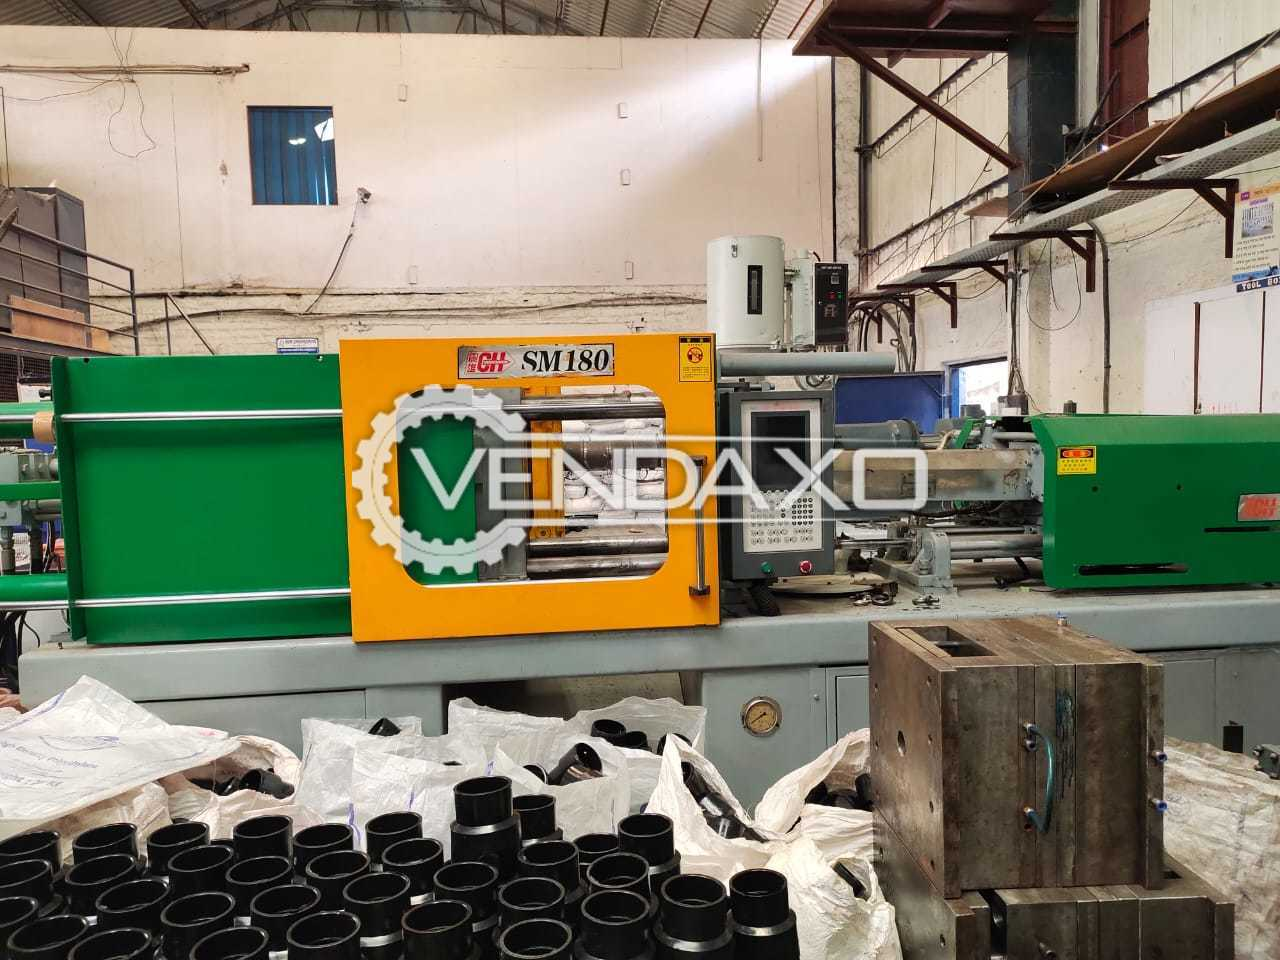 Chen Hsong SM 180 Injection Moulding Machine - 180 Ton